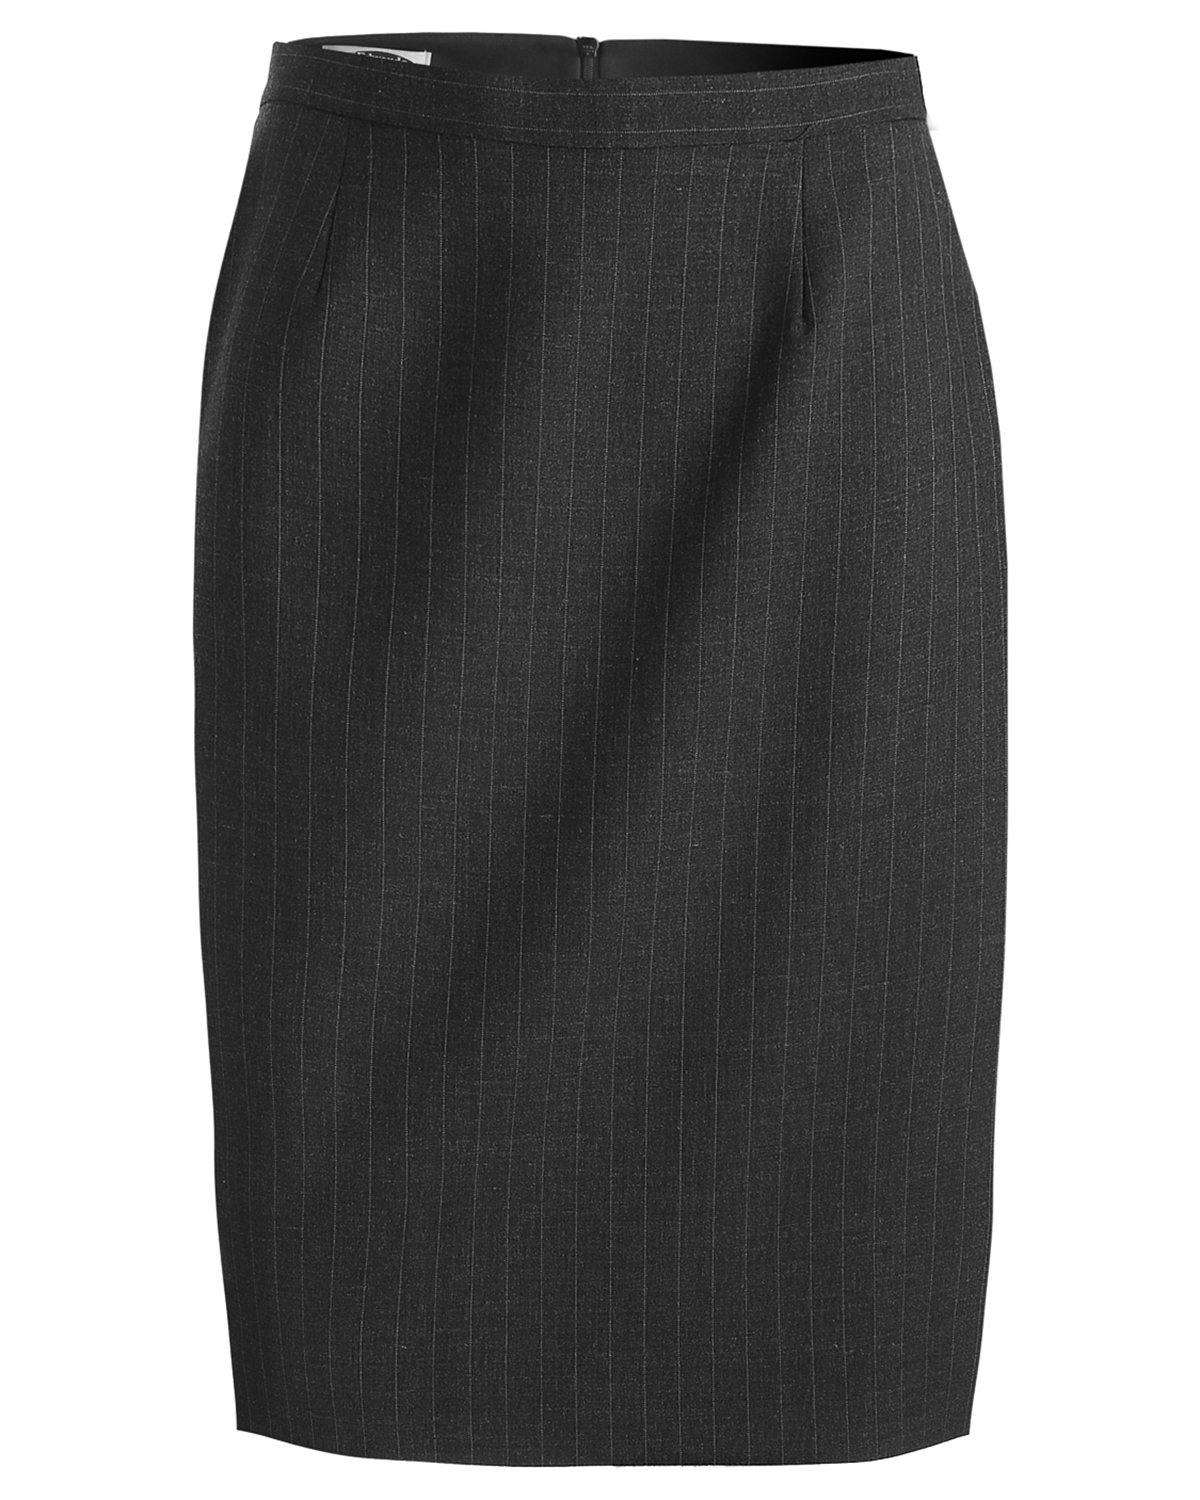 Edwards 9769 Women's Straight Style Classic Pinstripe Dress Skirt at GotApparel